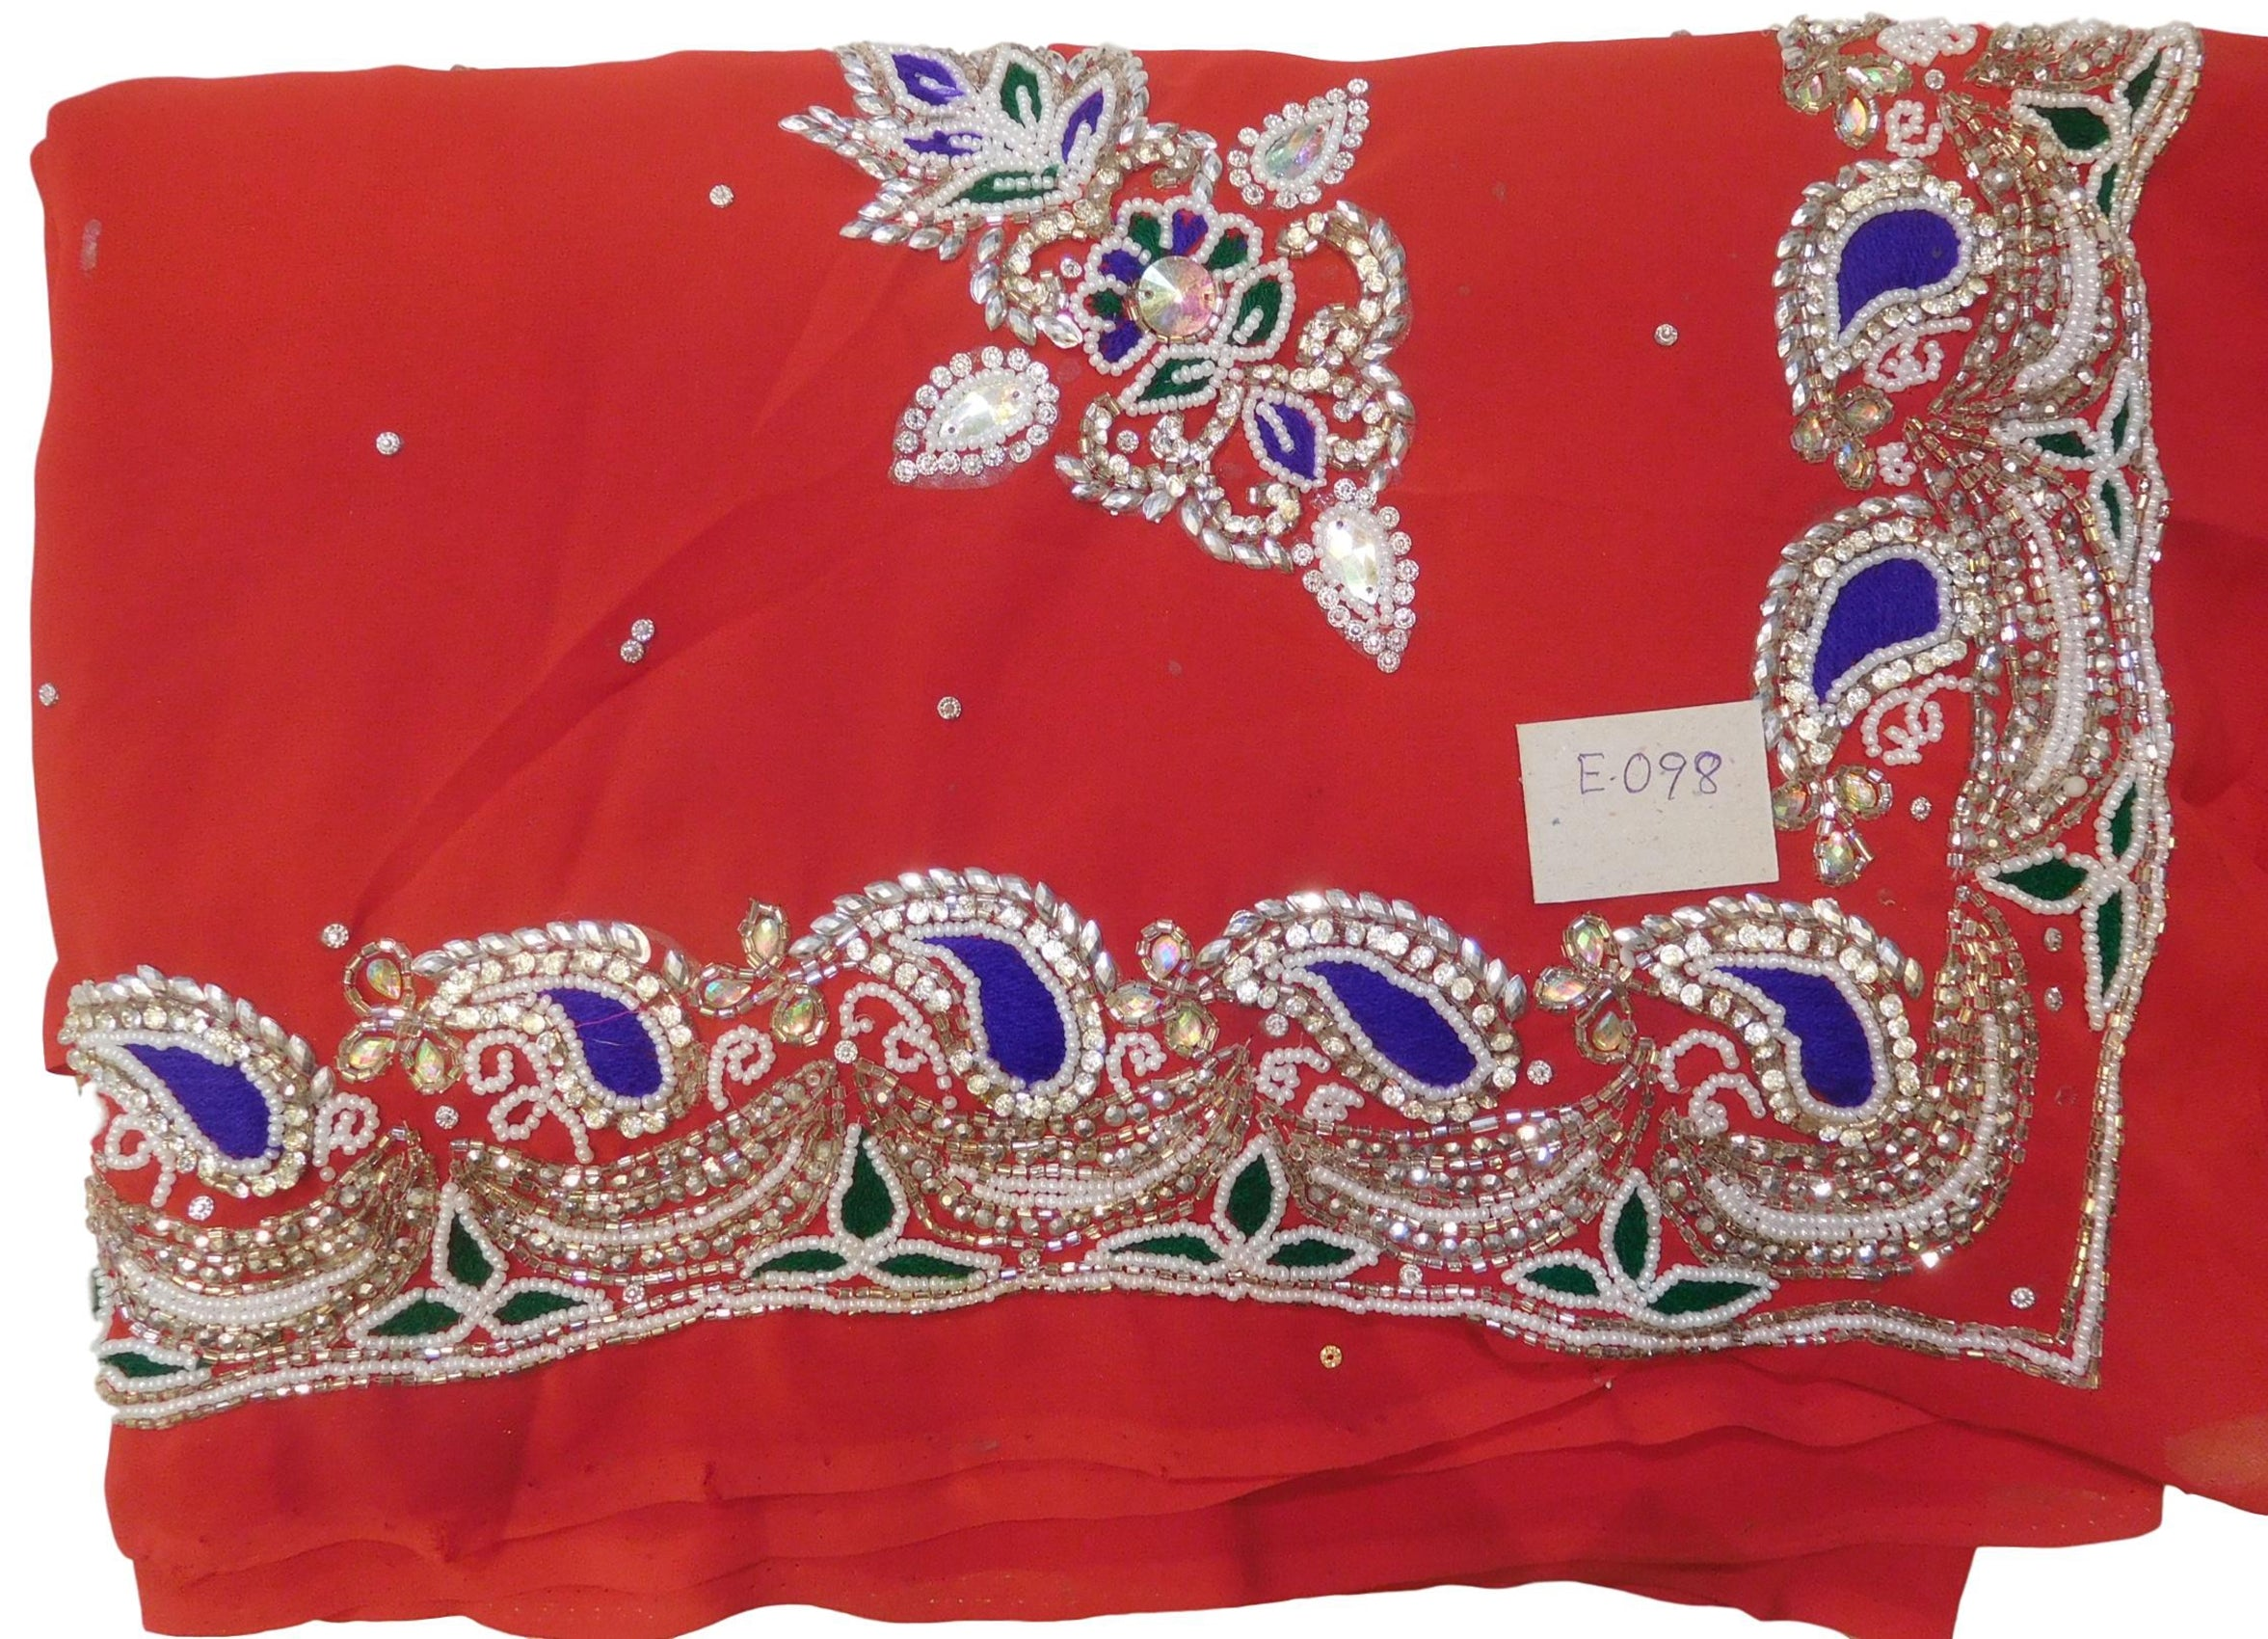 Red Designer Wedding Partywear Georgette Cutdana Thread Stone Hand Embroidery Work Bridal Saree Sari E098